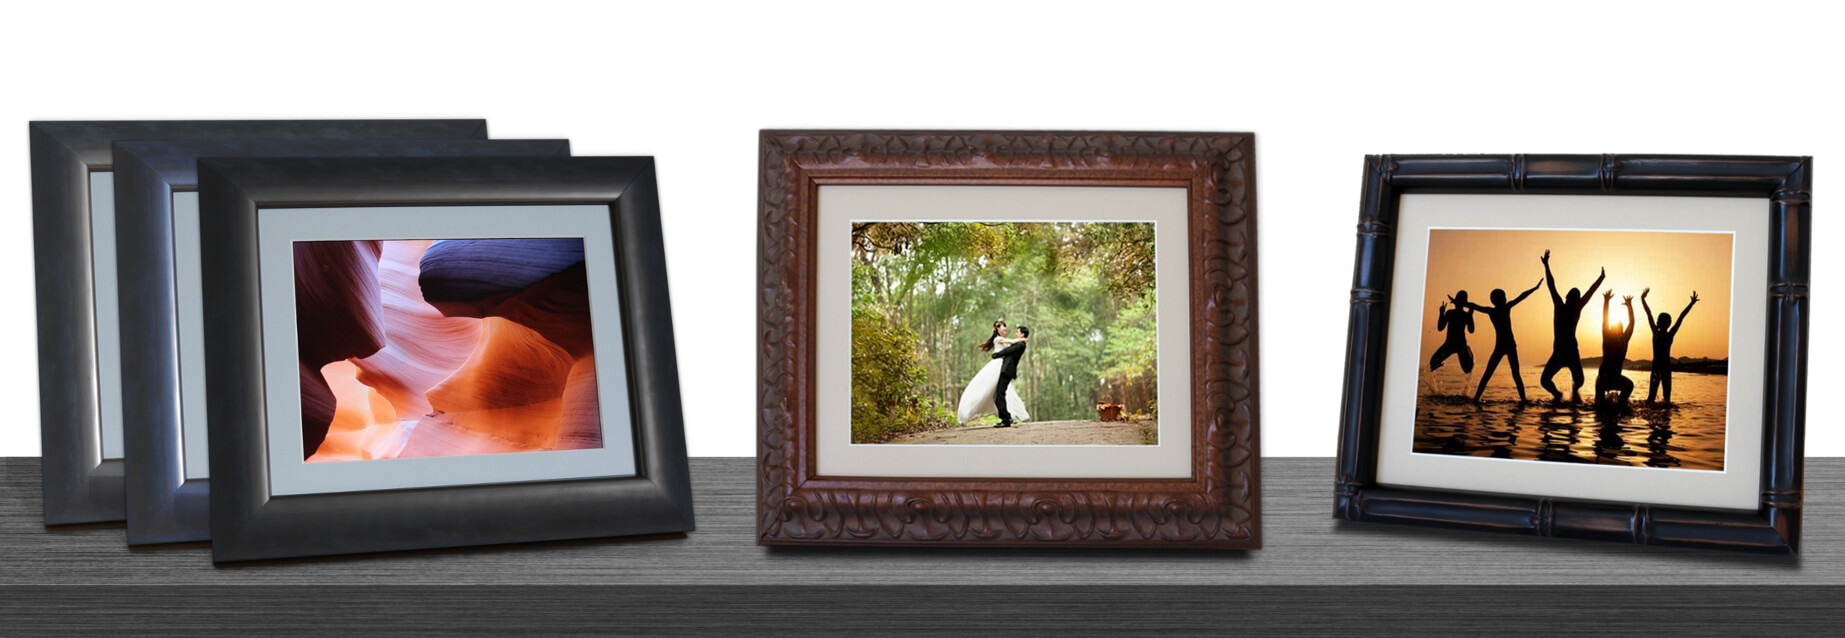 Digital Picture Frames for Interior Decor